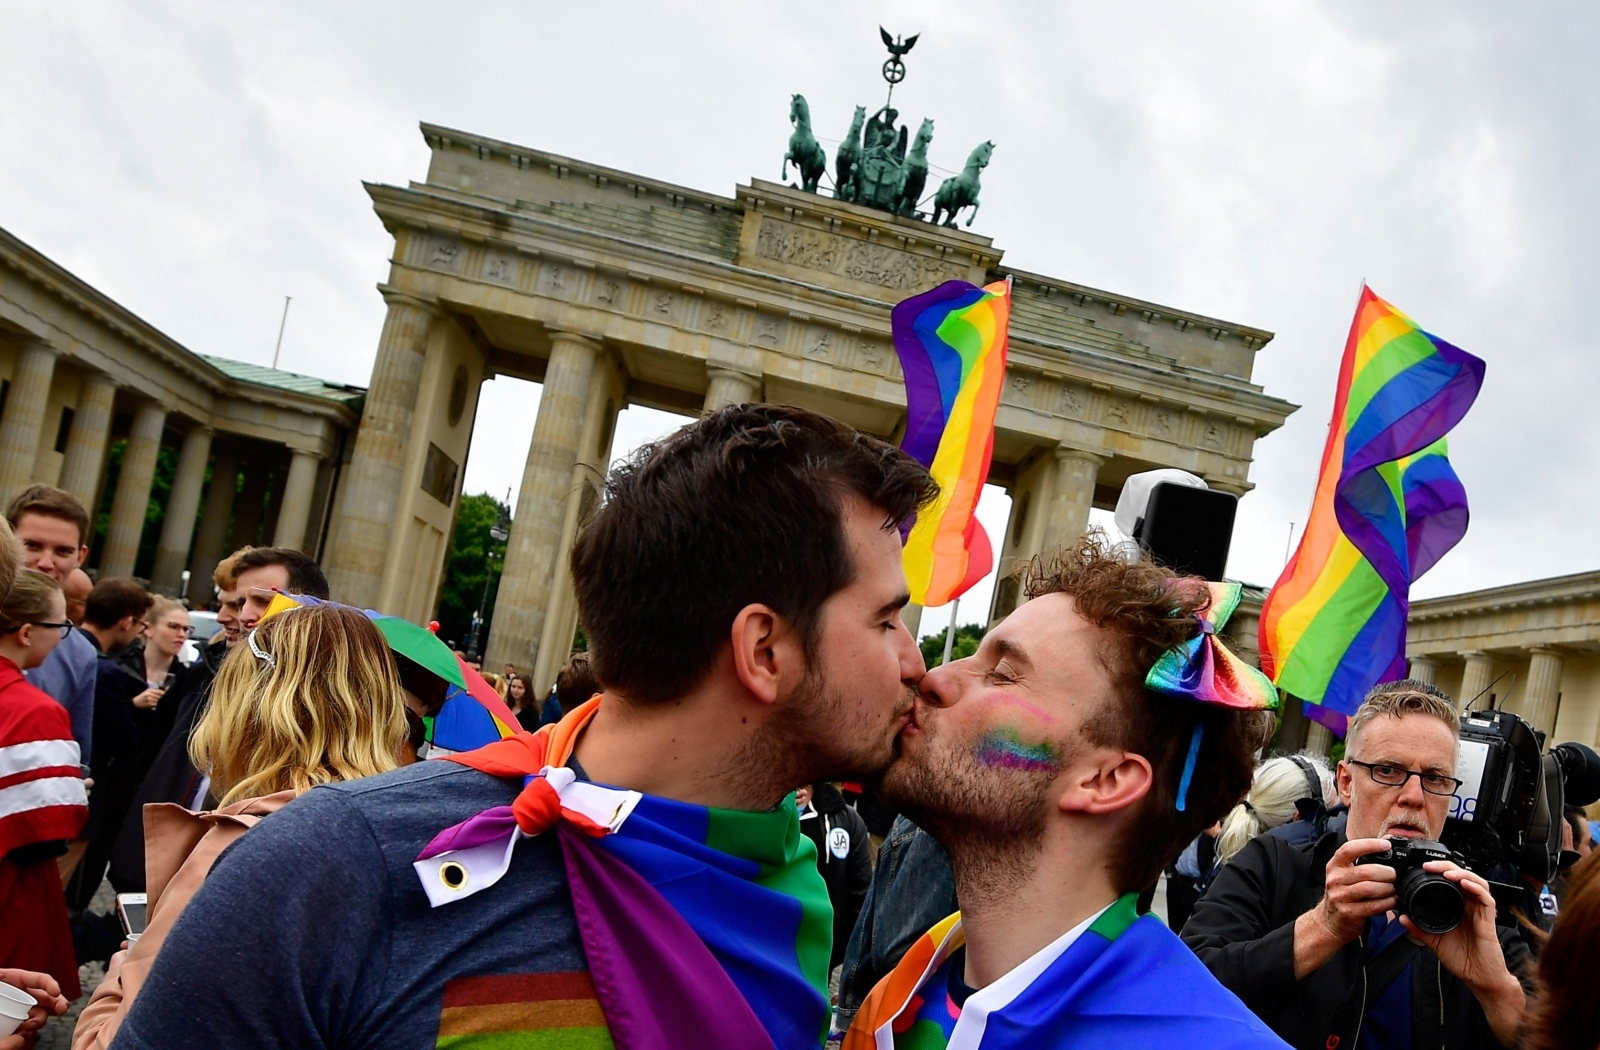 LGBT rally in front of Brandenburg Gate